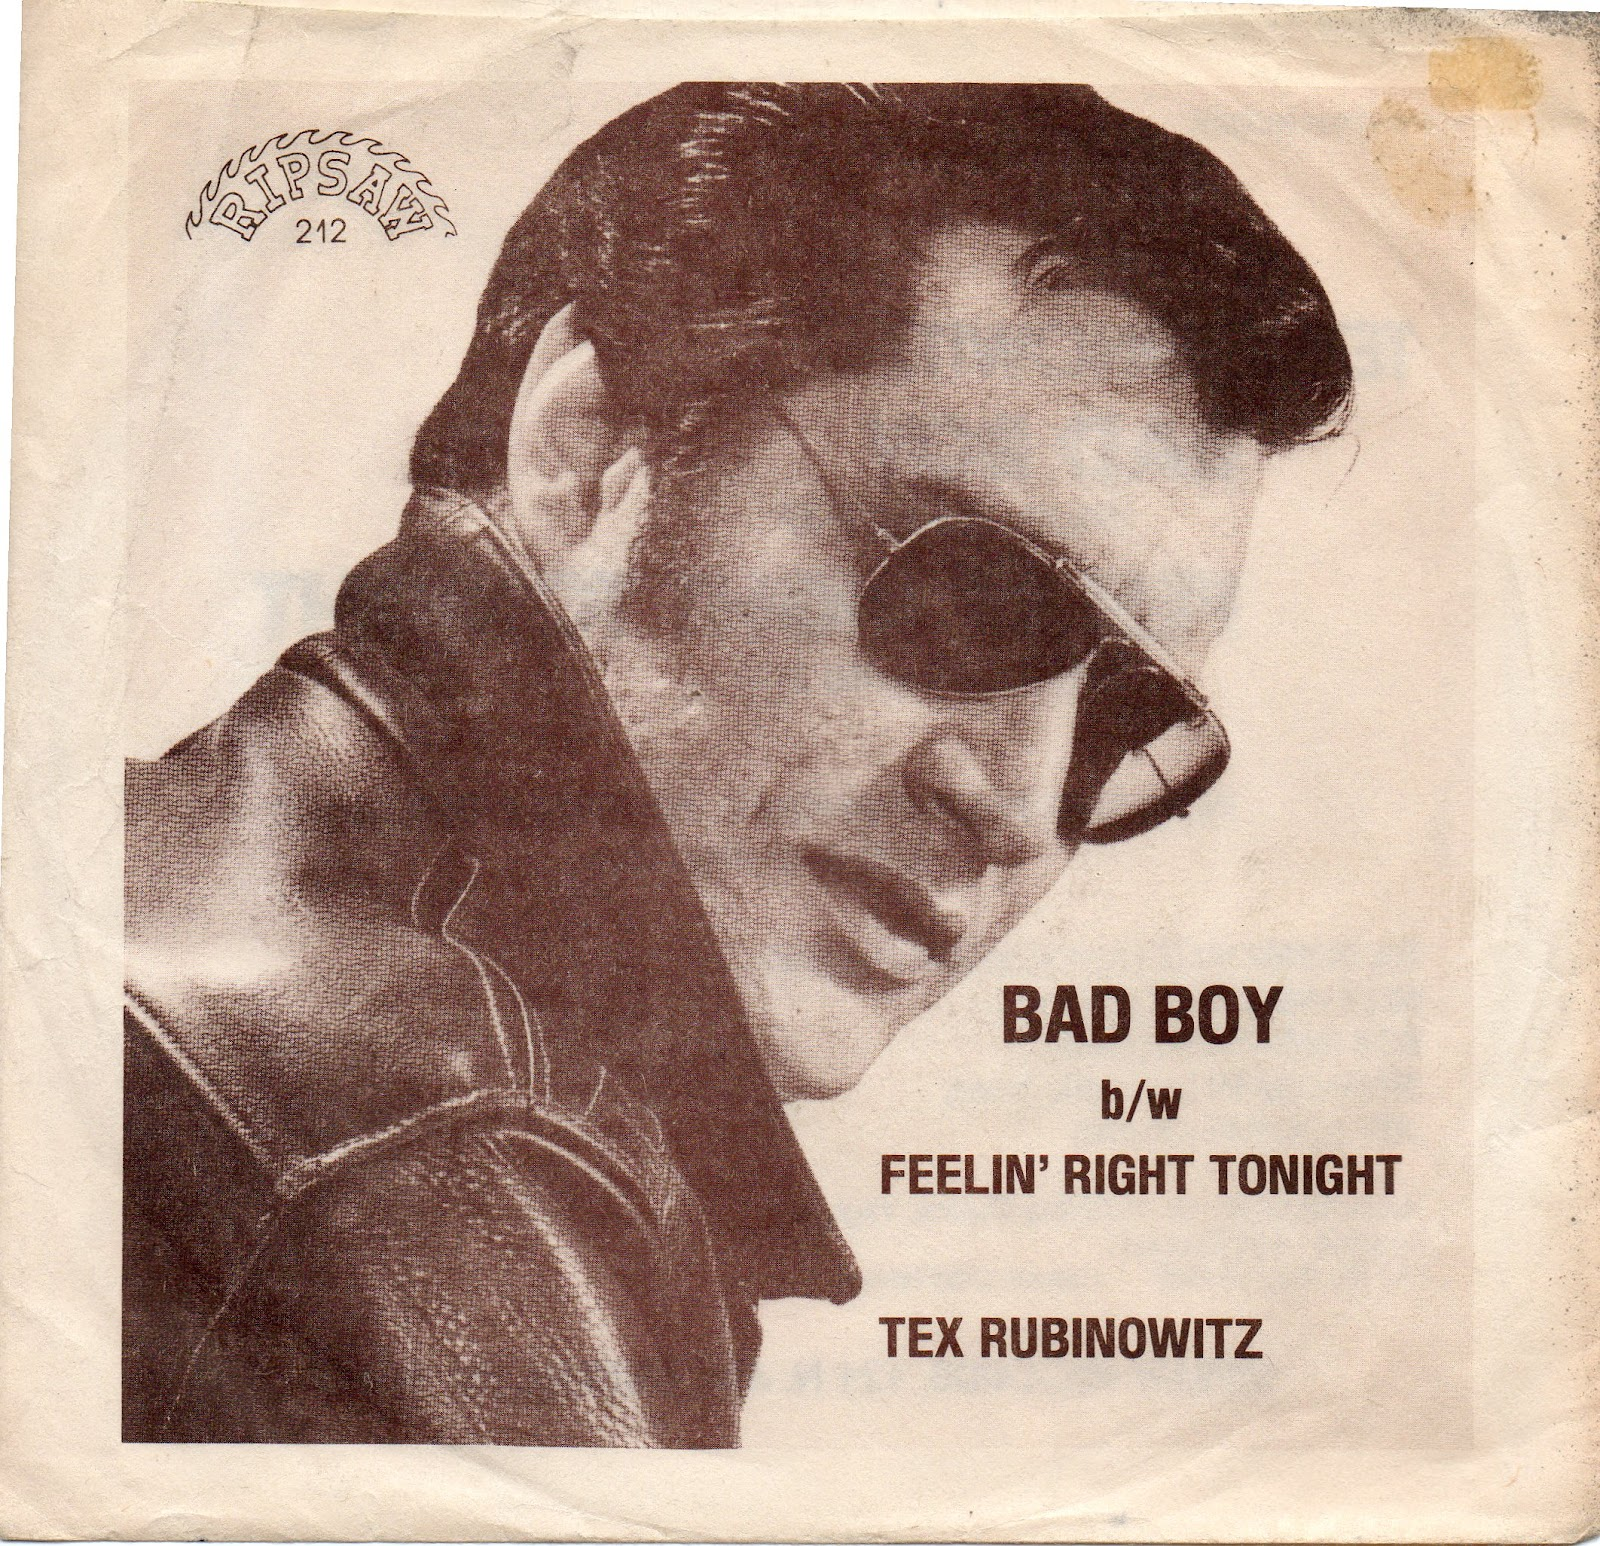 Tex Rubinowitz - Bad Boy B/W Feelin' Right Tonight